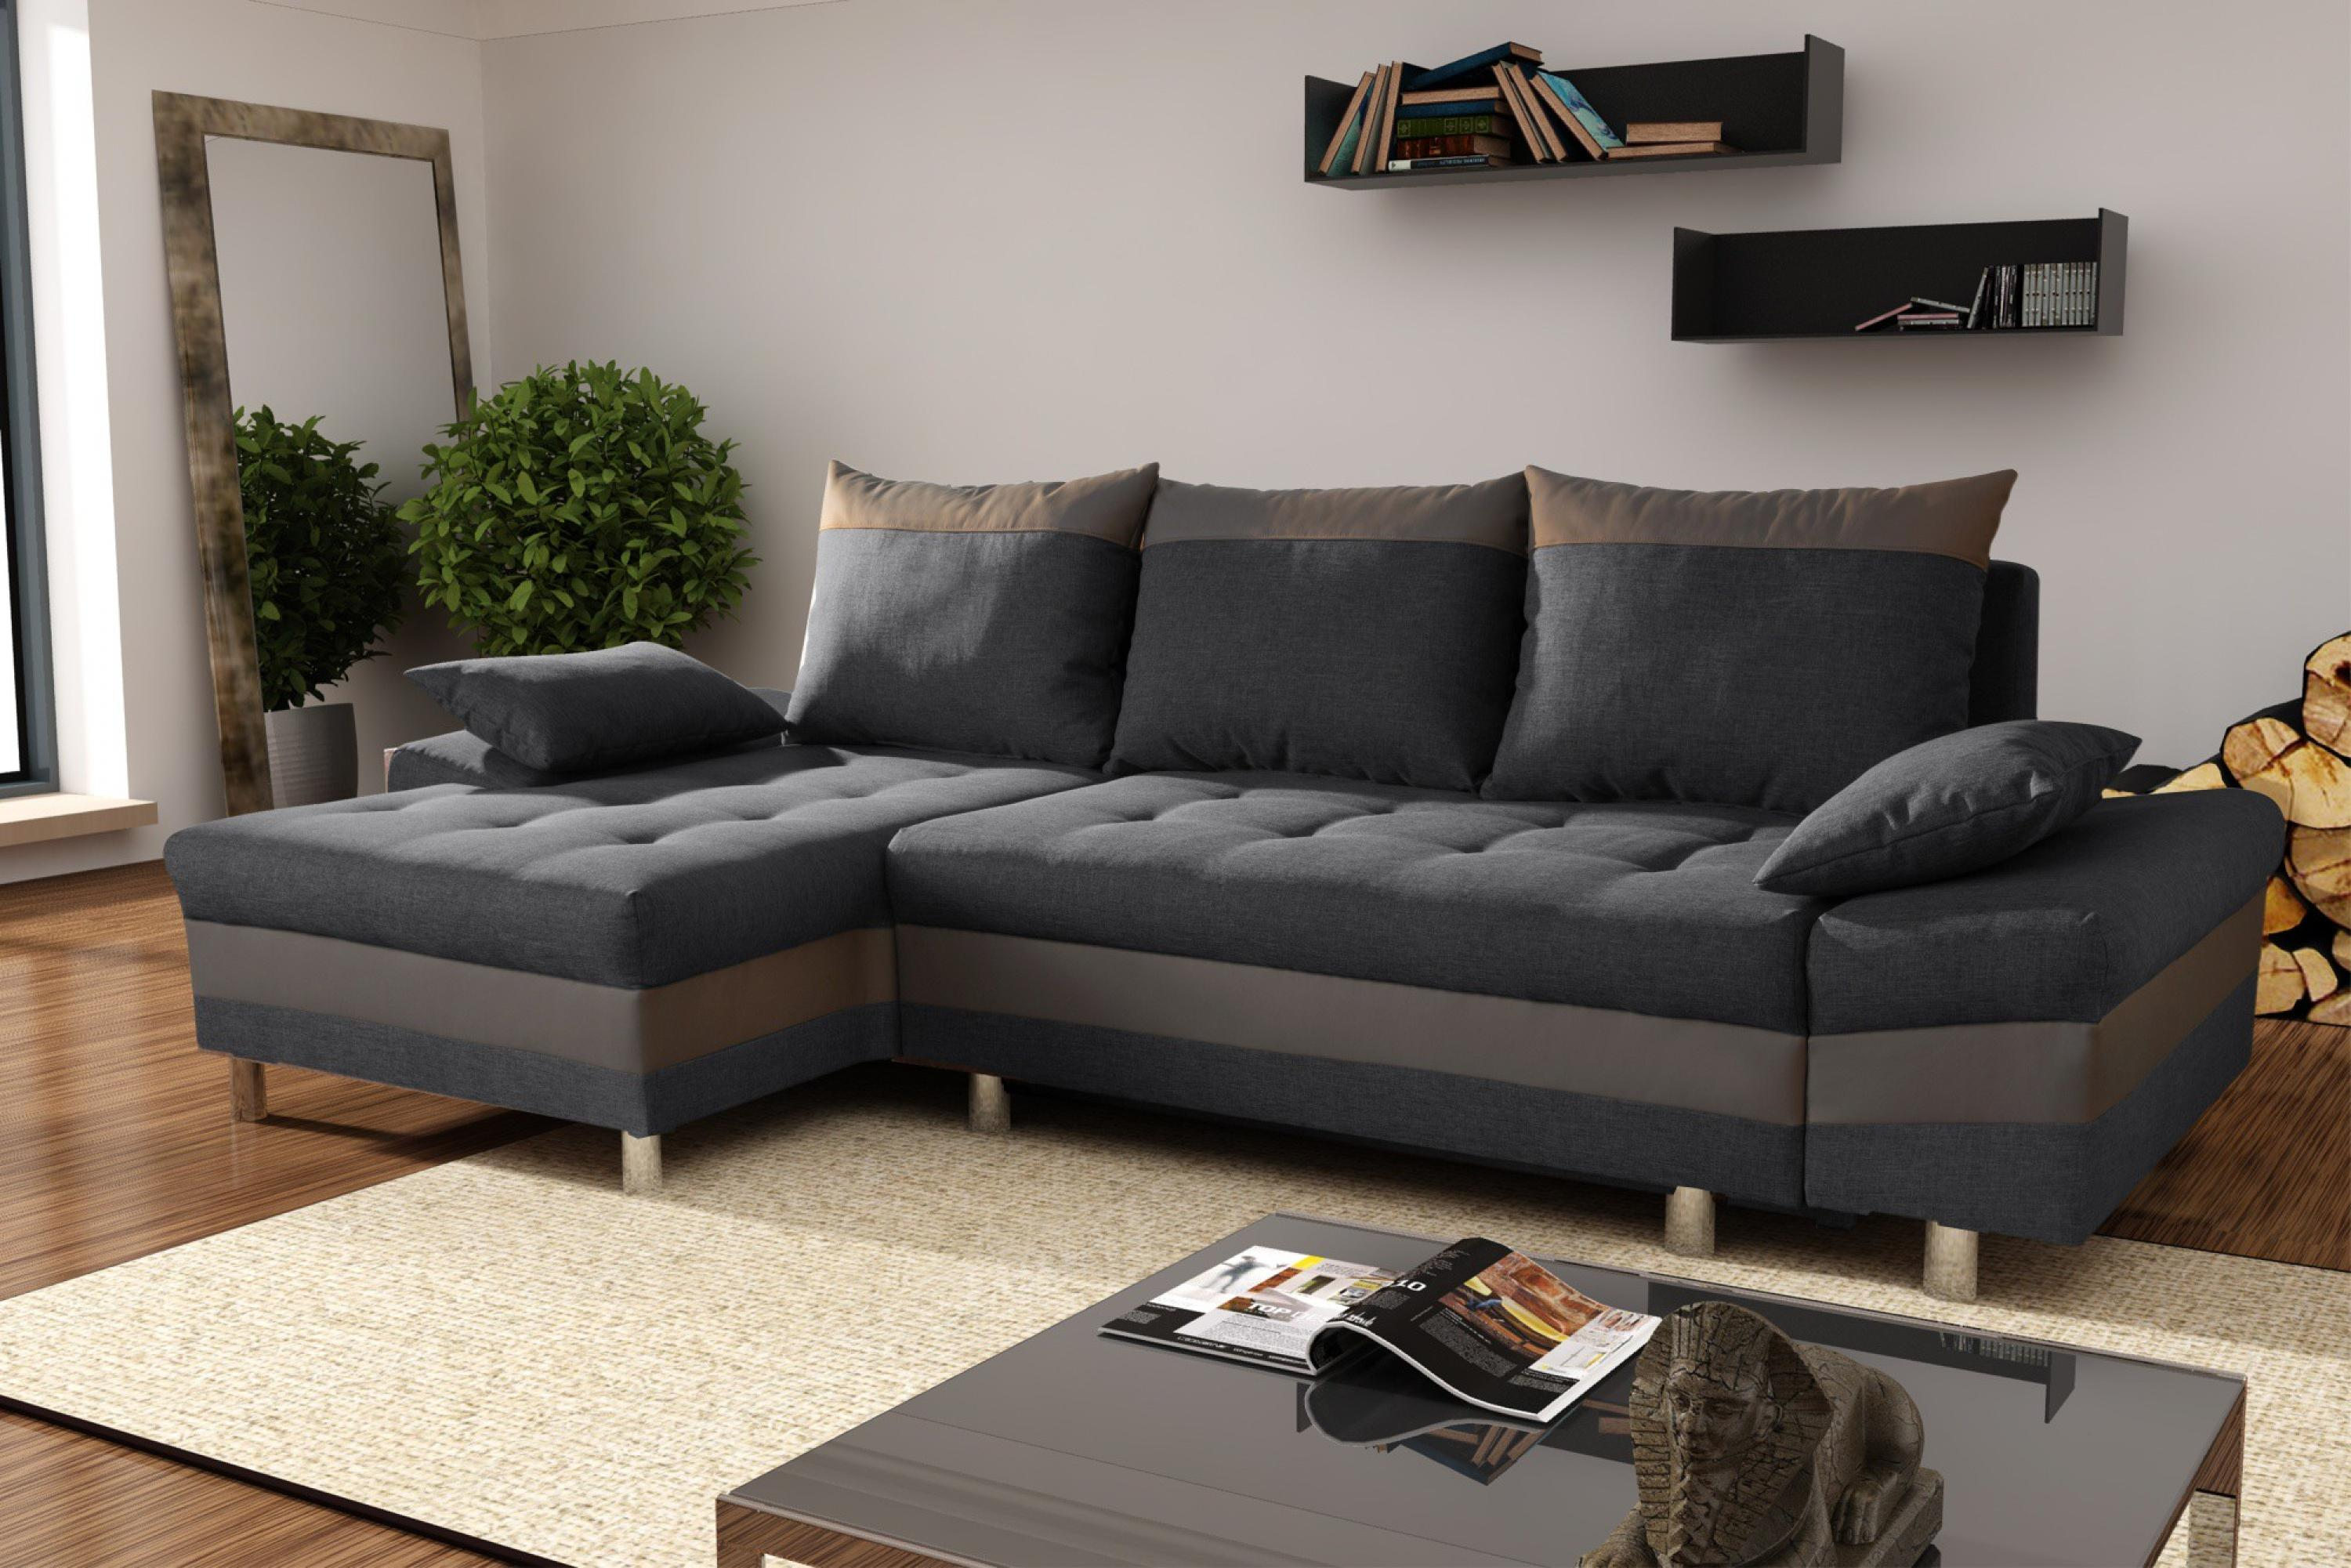 Photos canap d 39 angle tissu gris anthracite - Canape d angle but gris ...